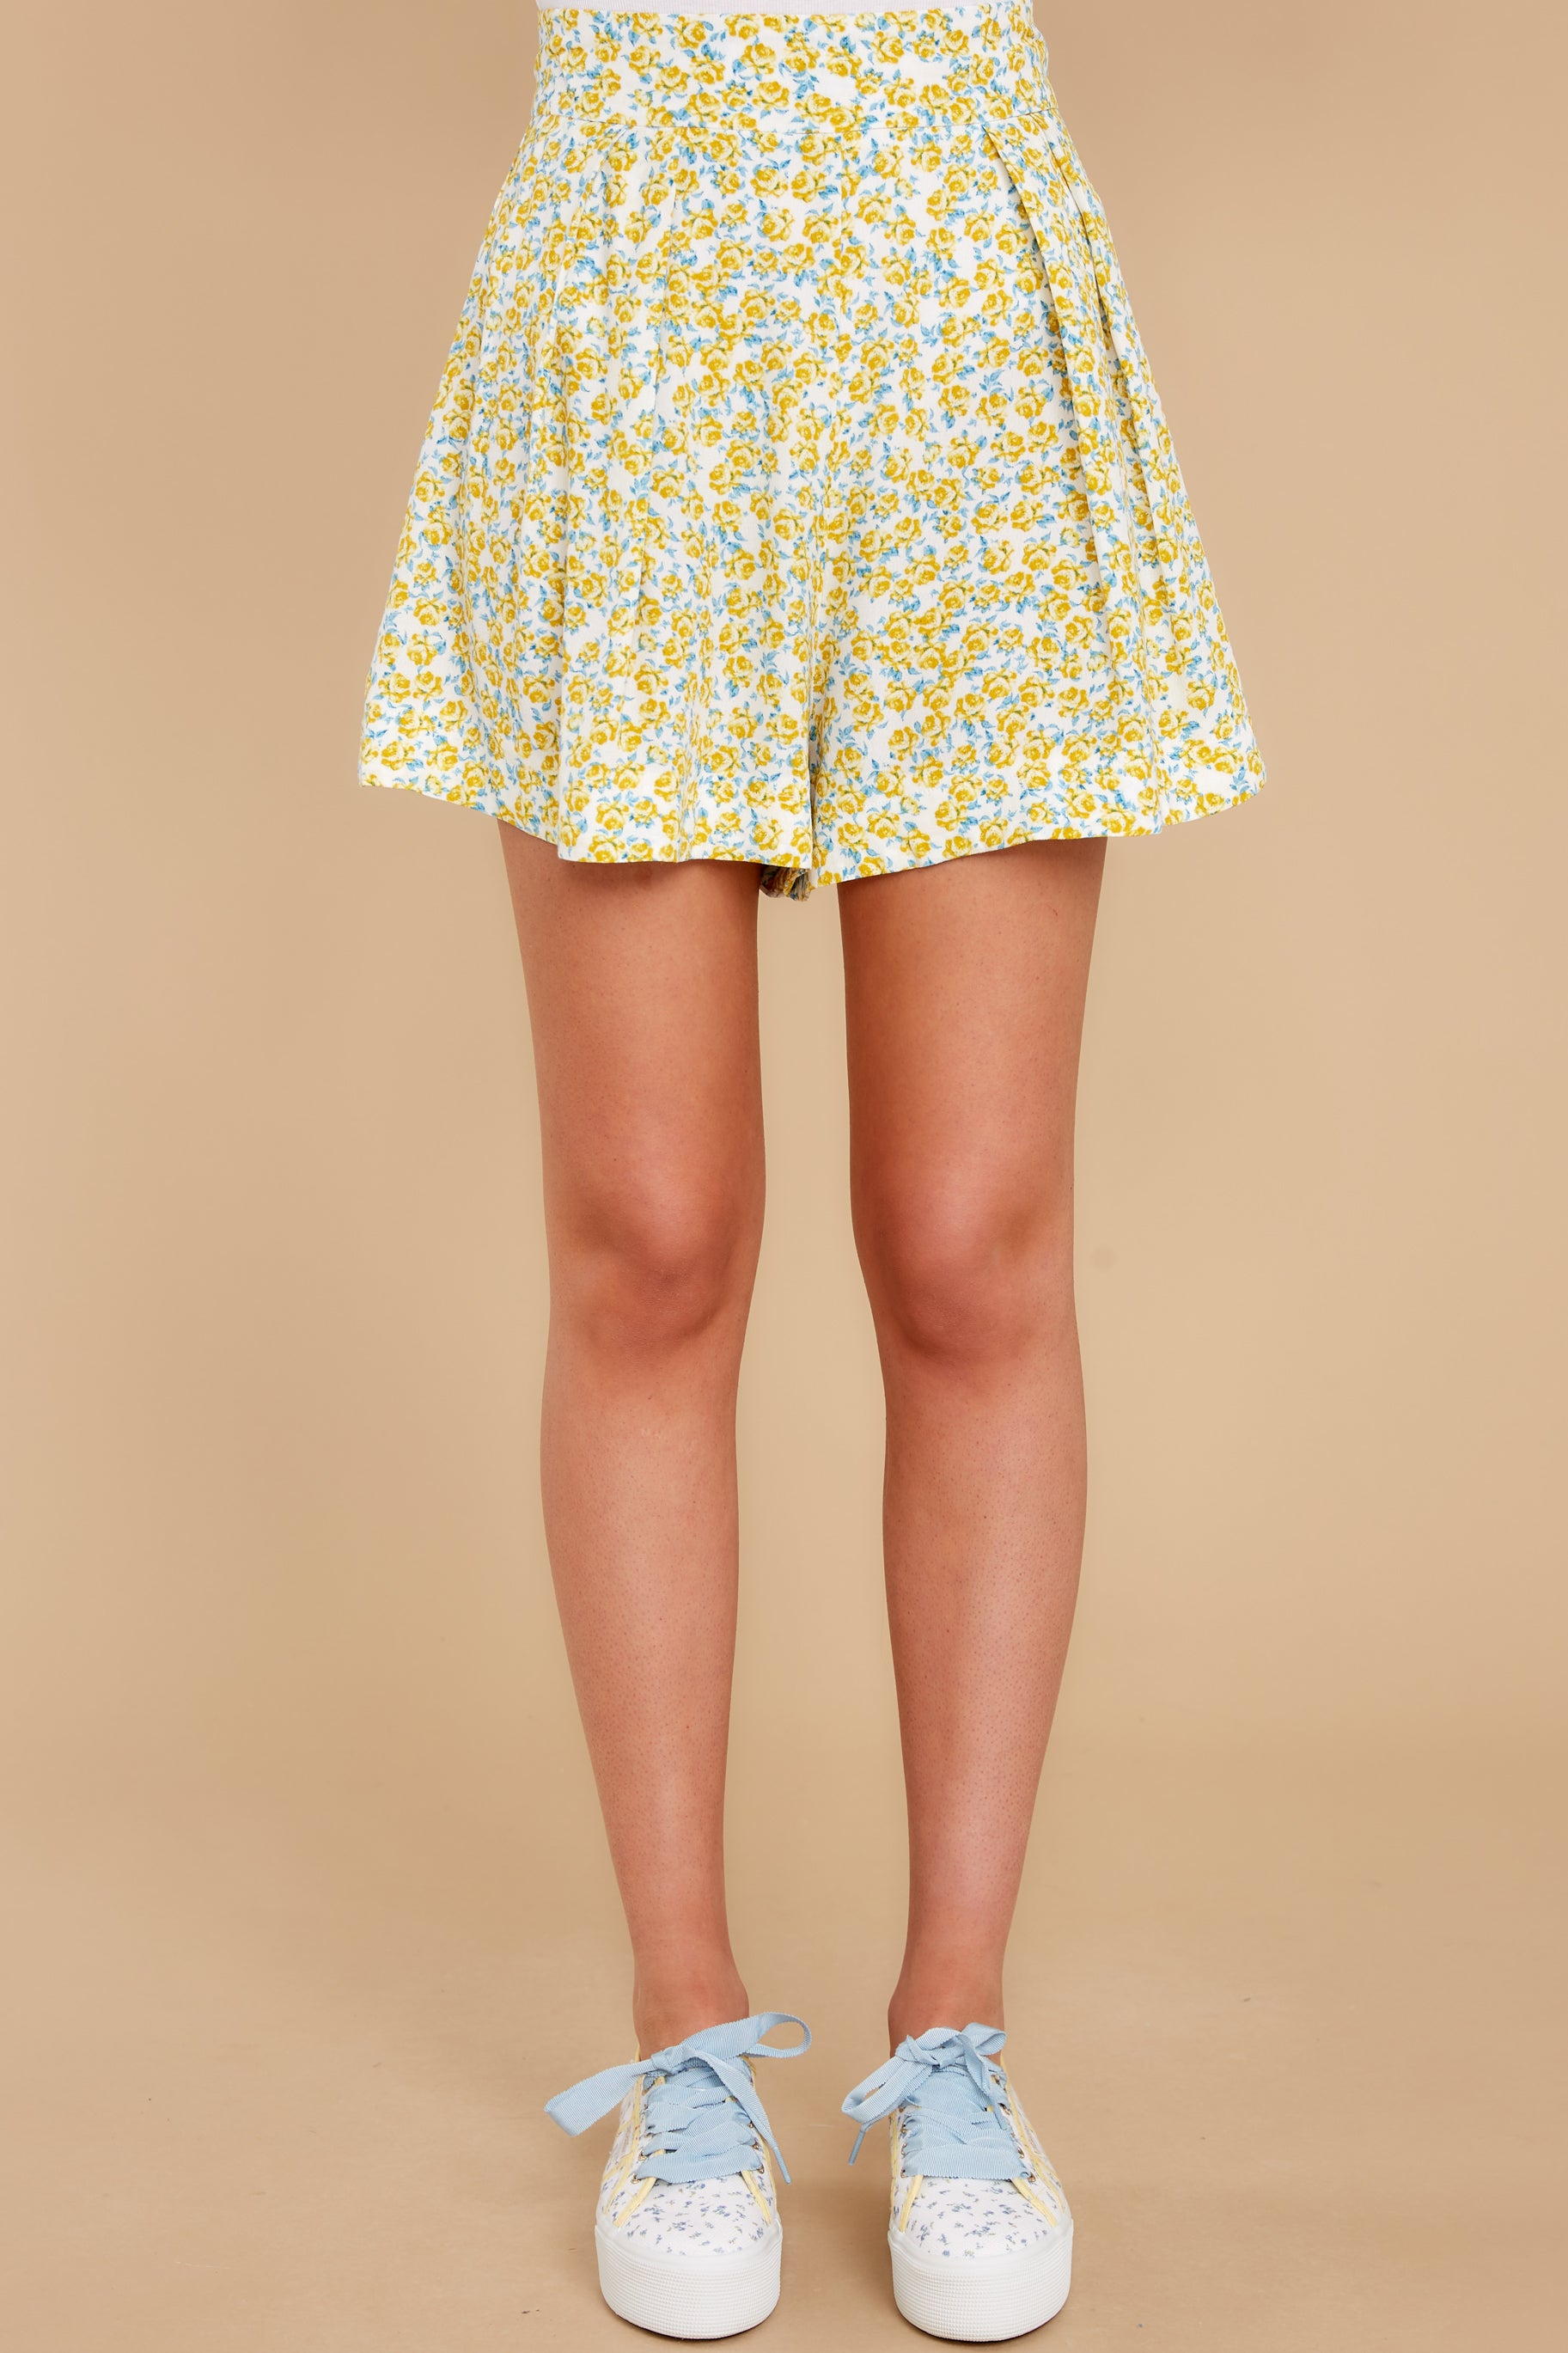 2 My Flawless Yellow Floral Print Skirt at reddress.com